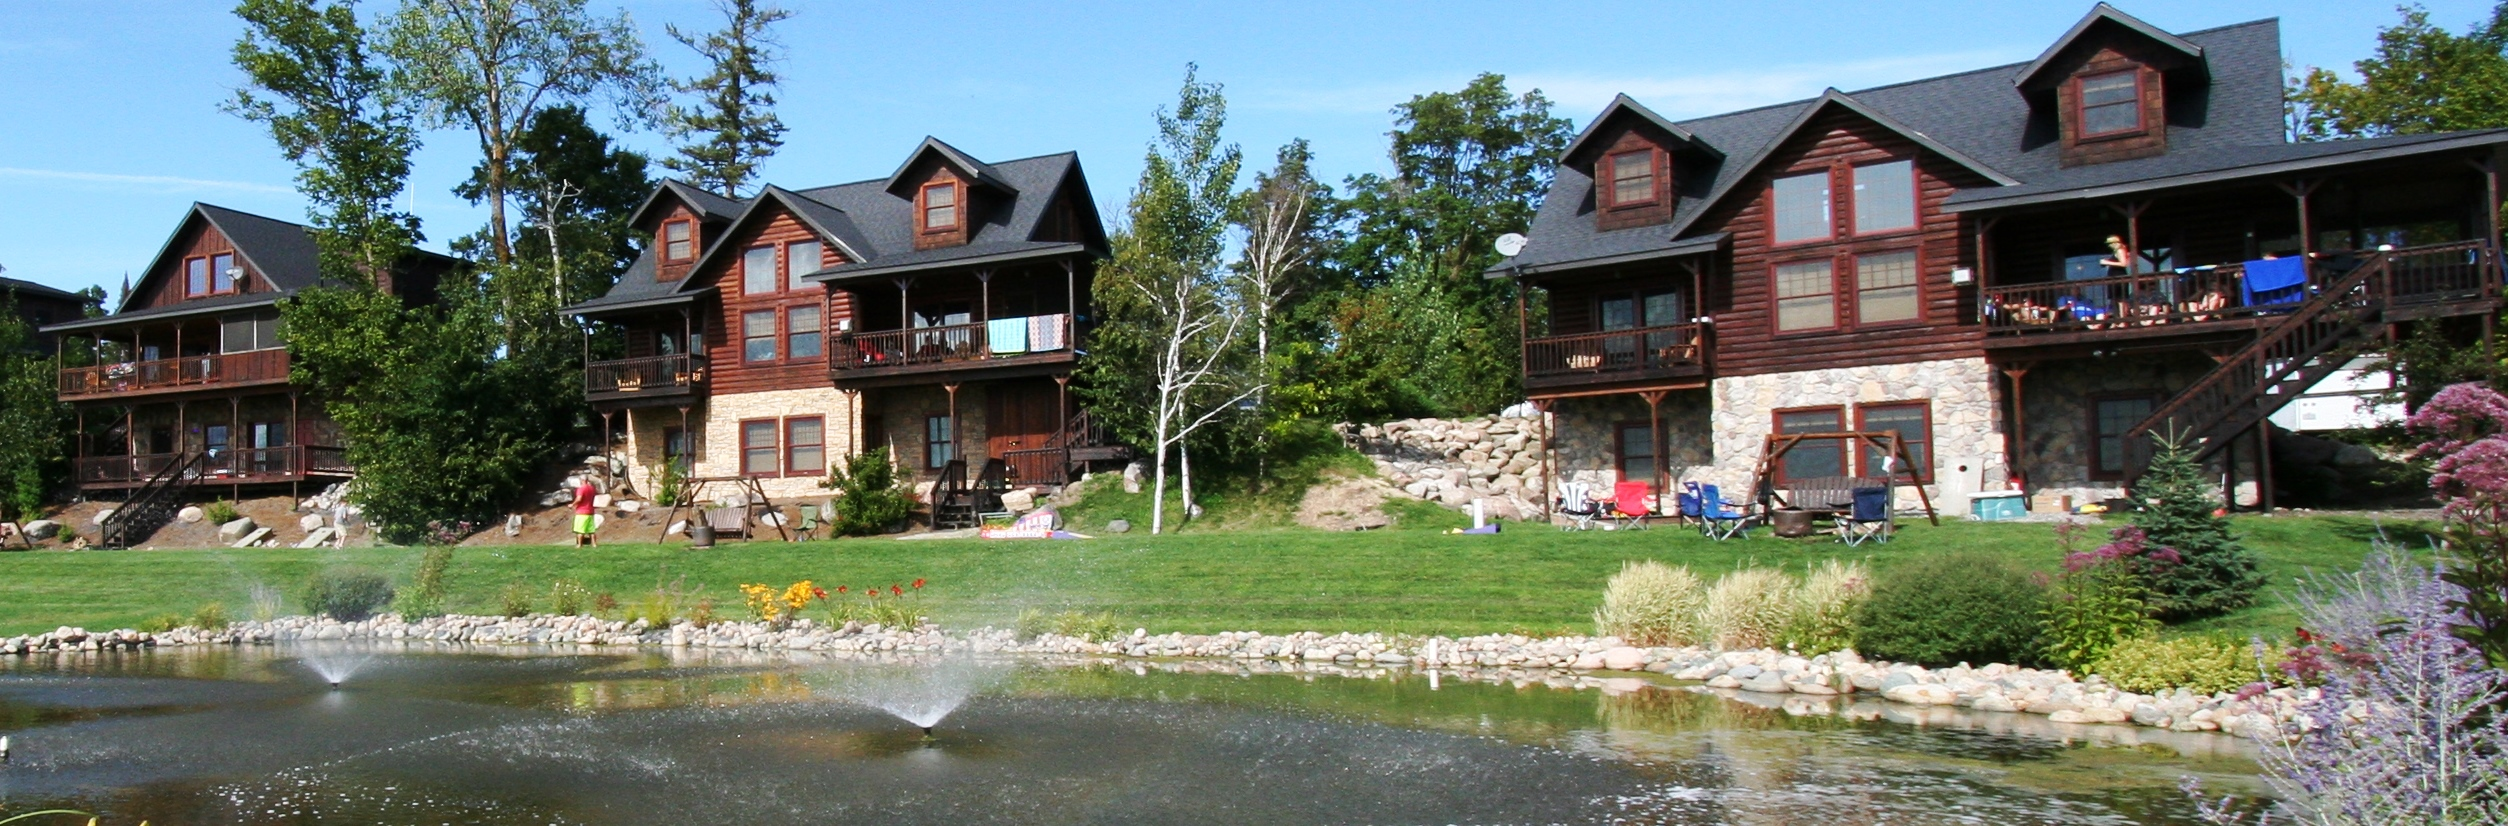 t lutsen cabins vacation mn minnesota rentals com lakeplace lake cabin on cabinrentals caribou